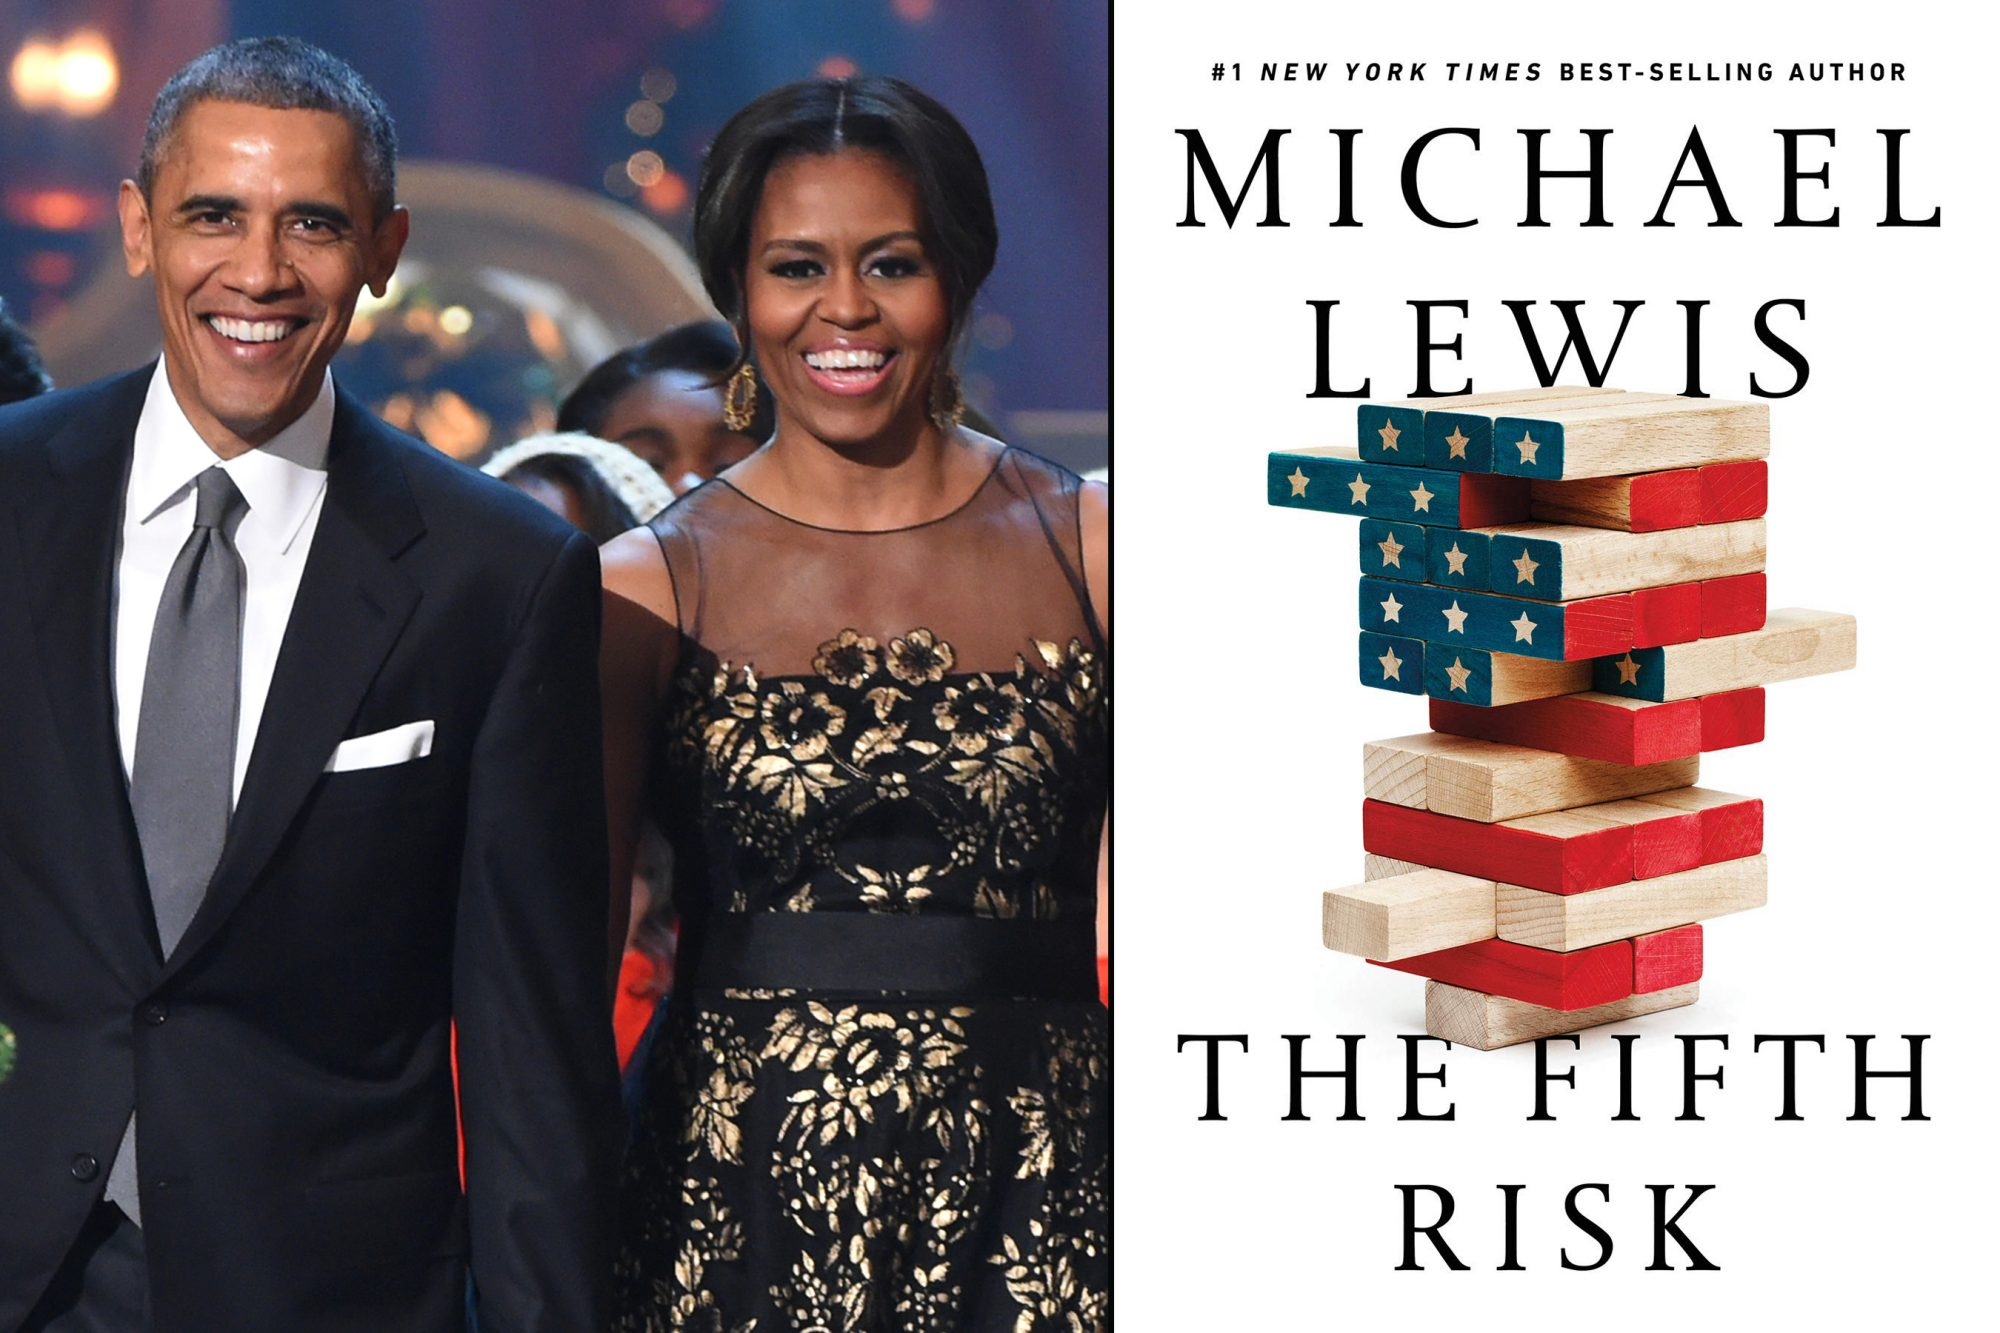 Obamas-Fifth-Risk